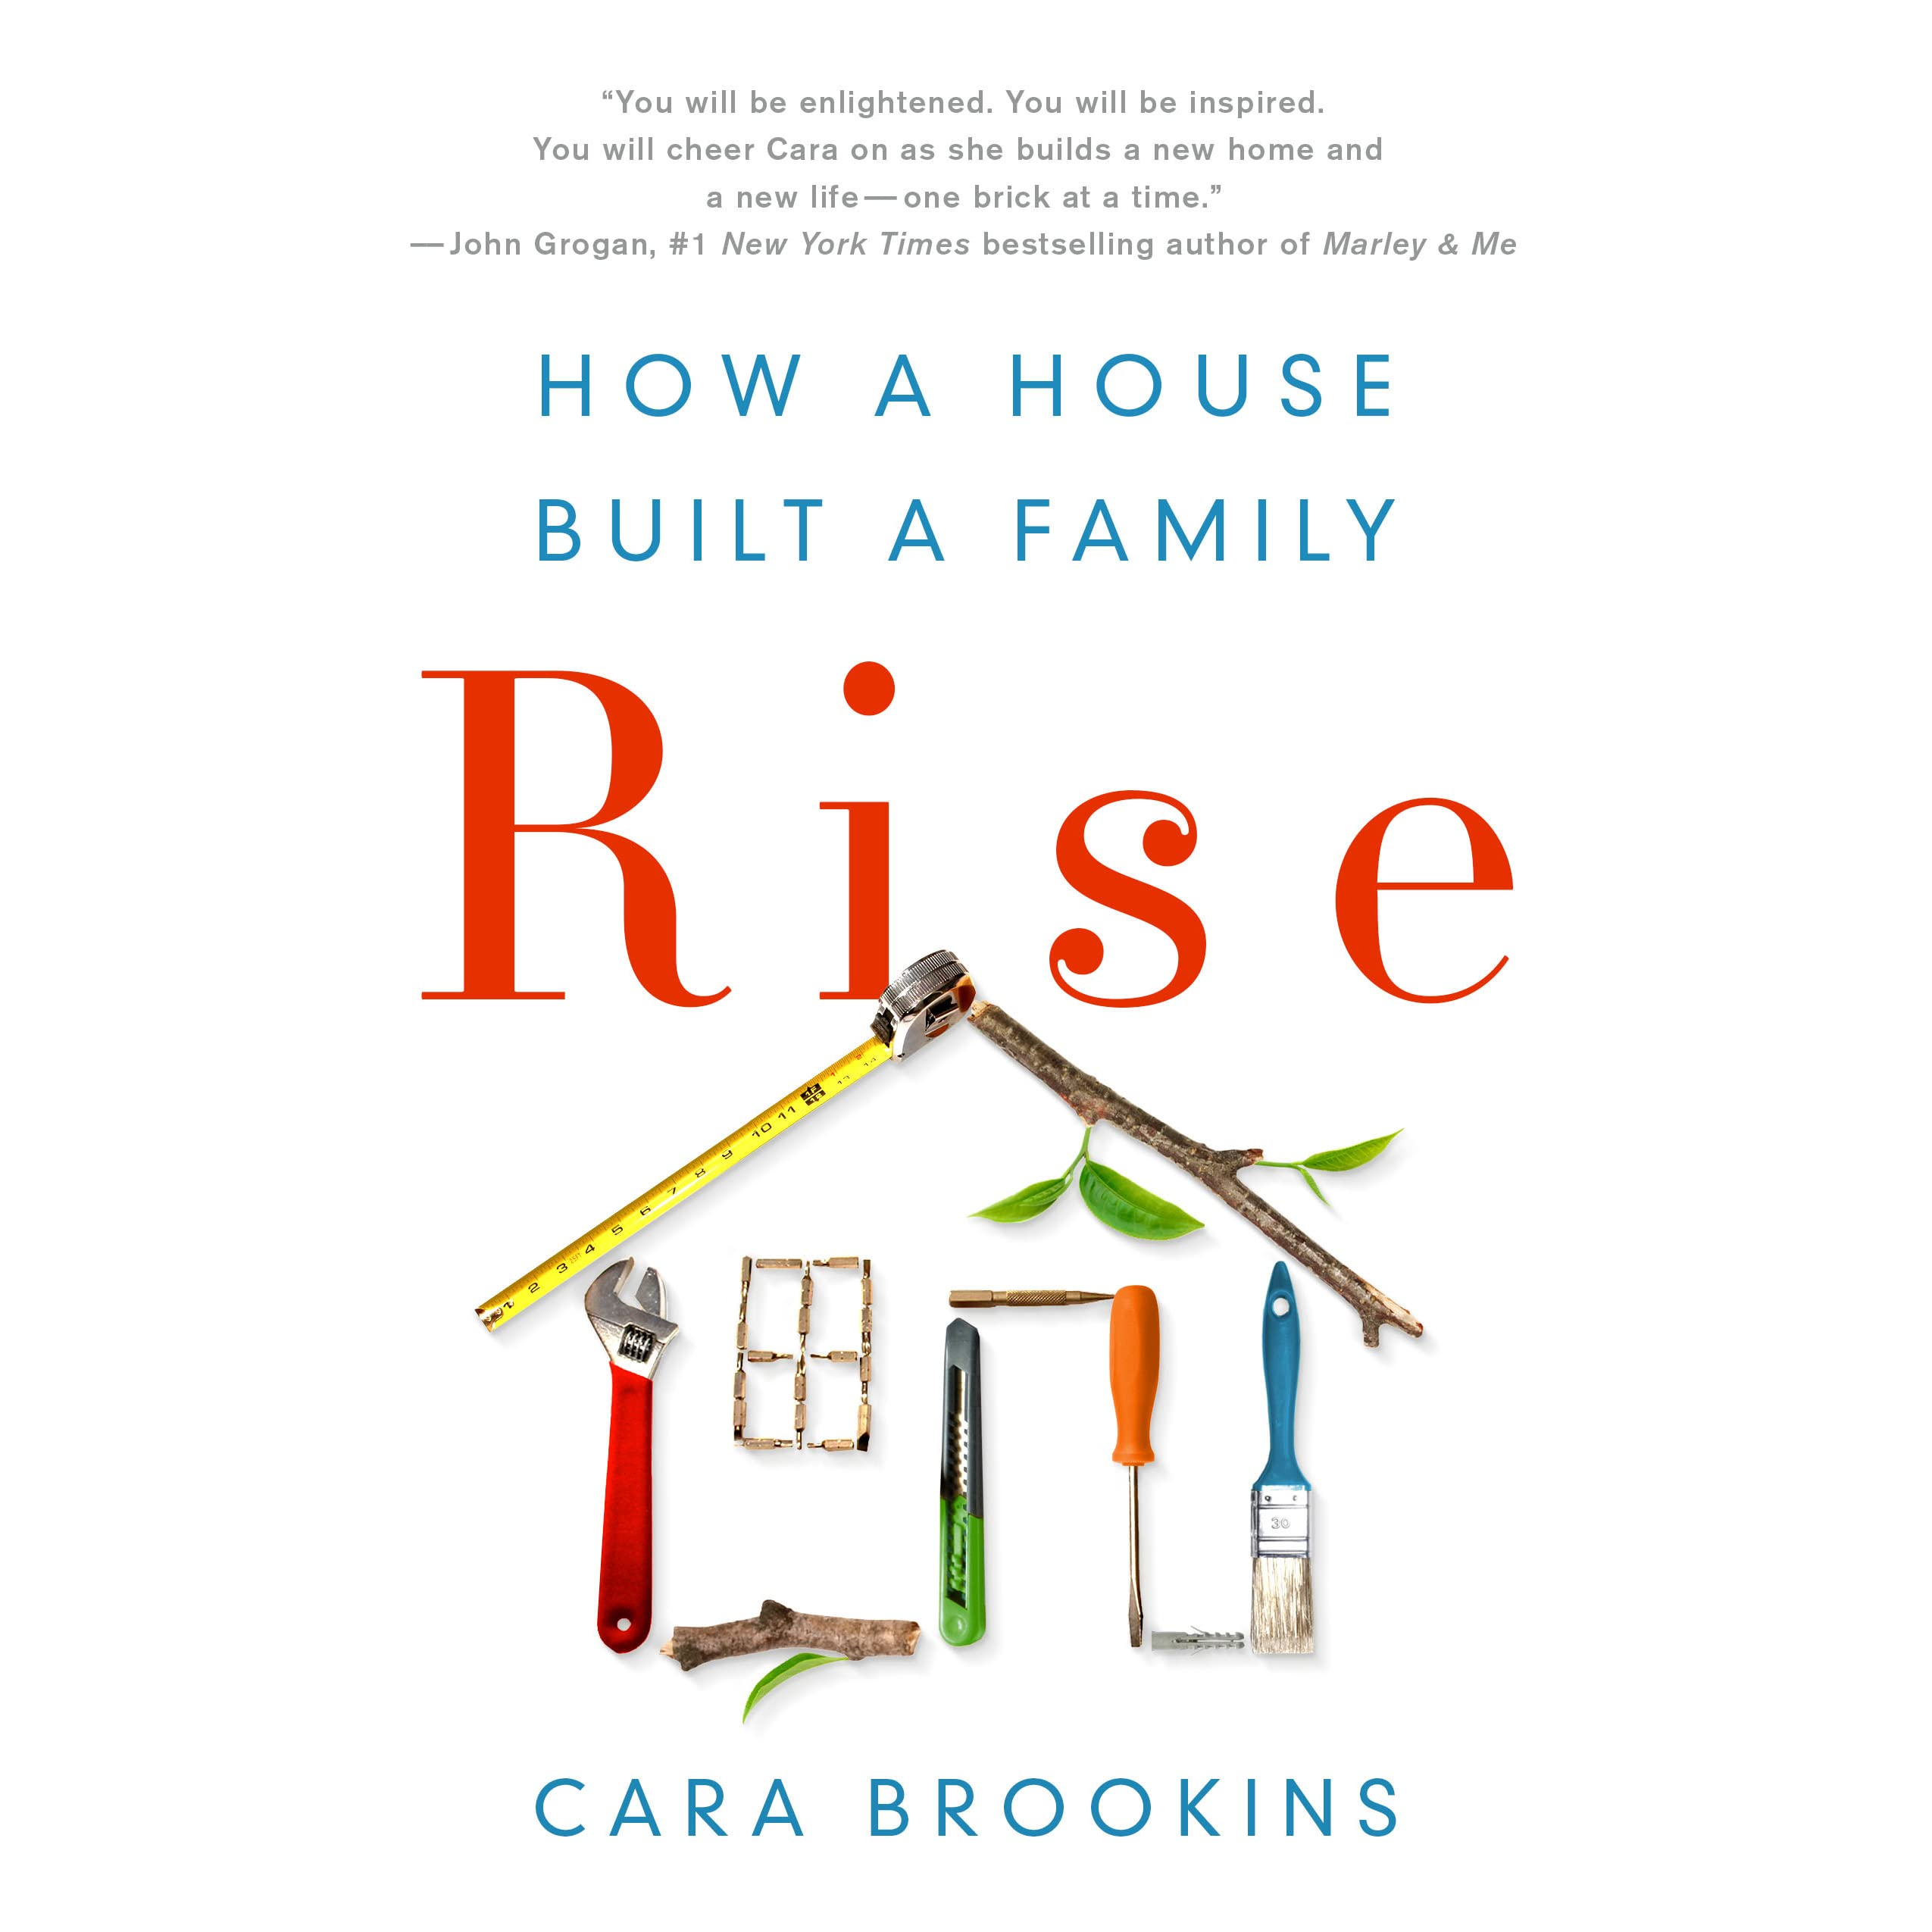 how to build a house book summary